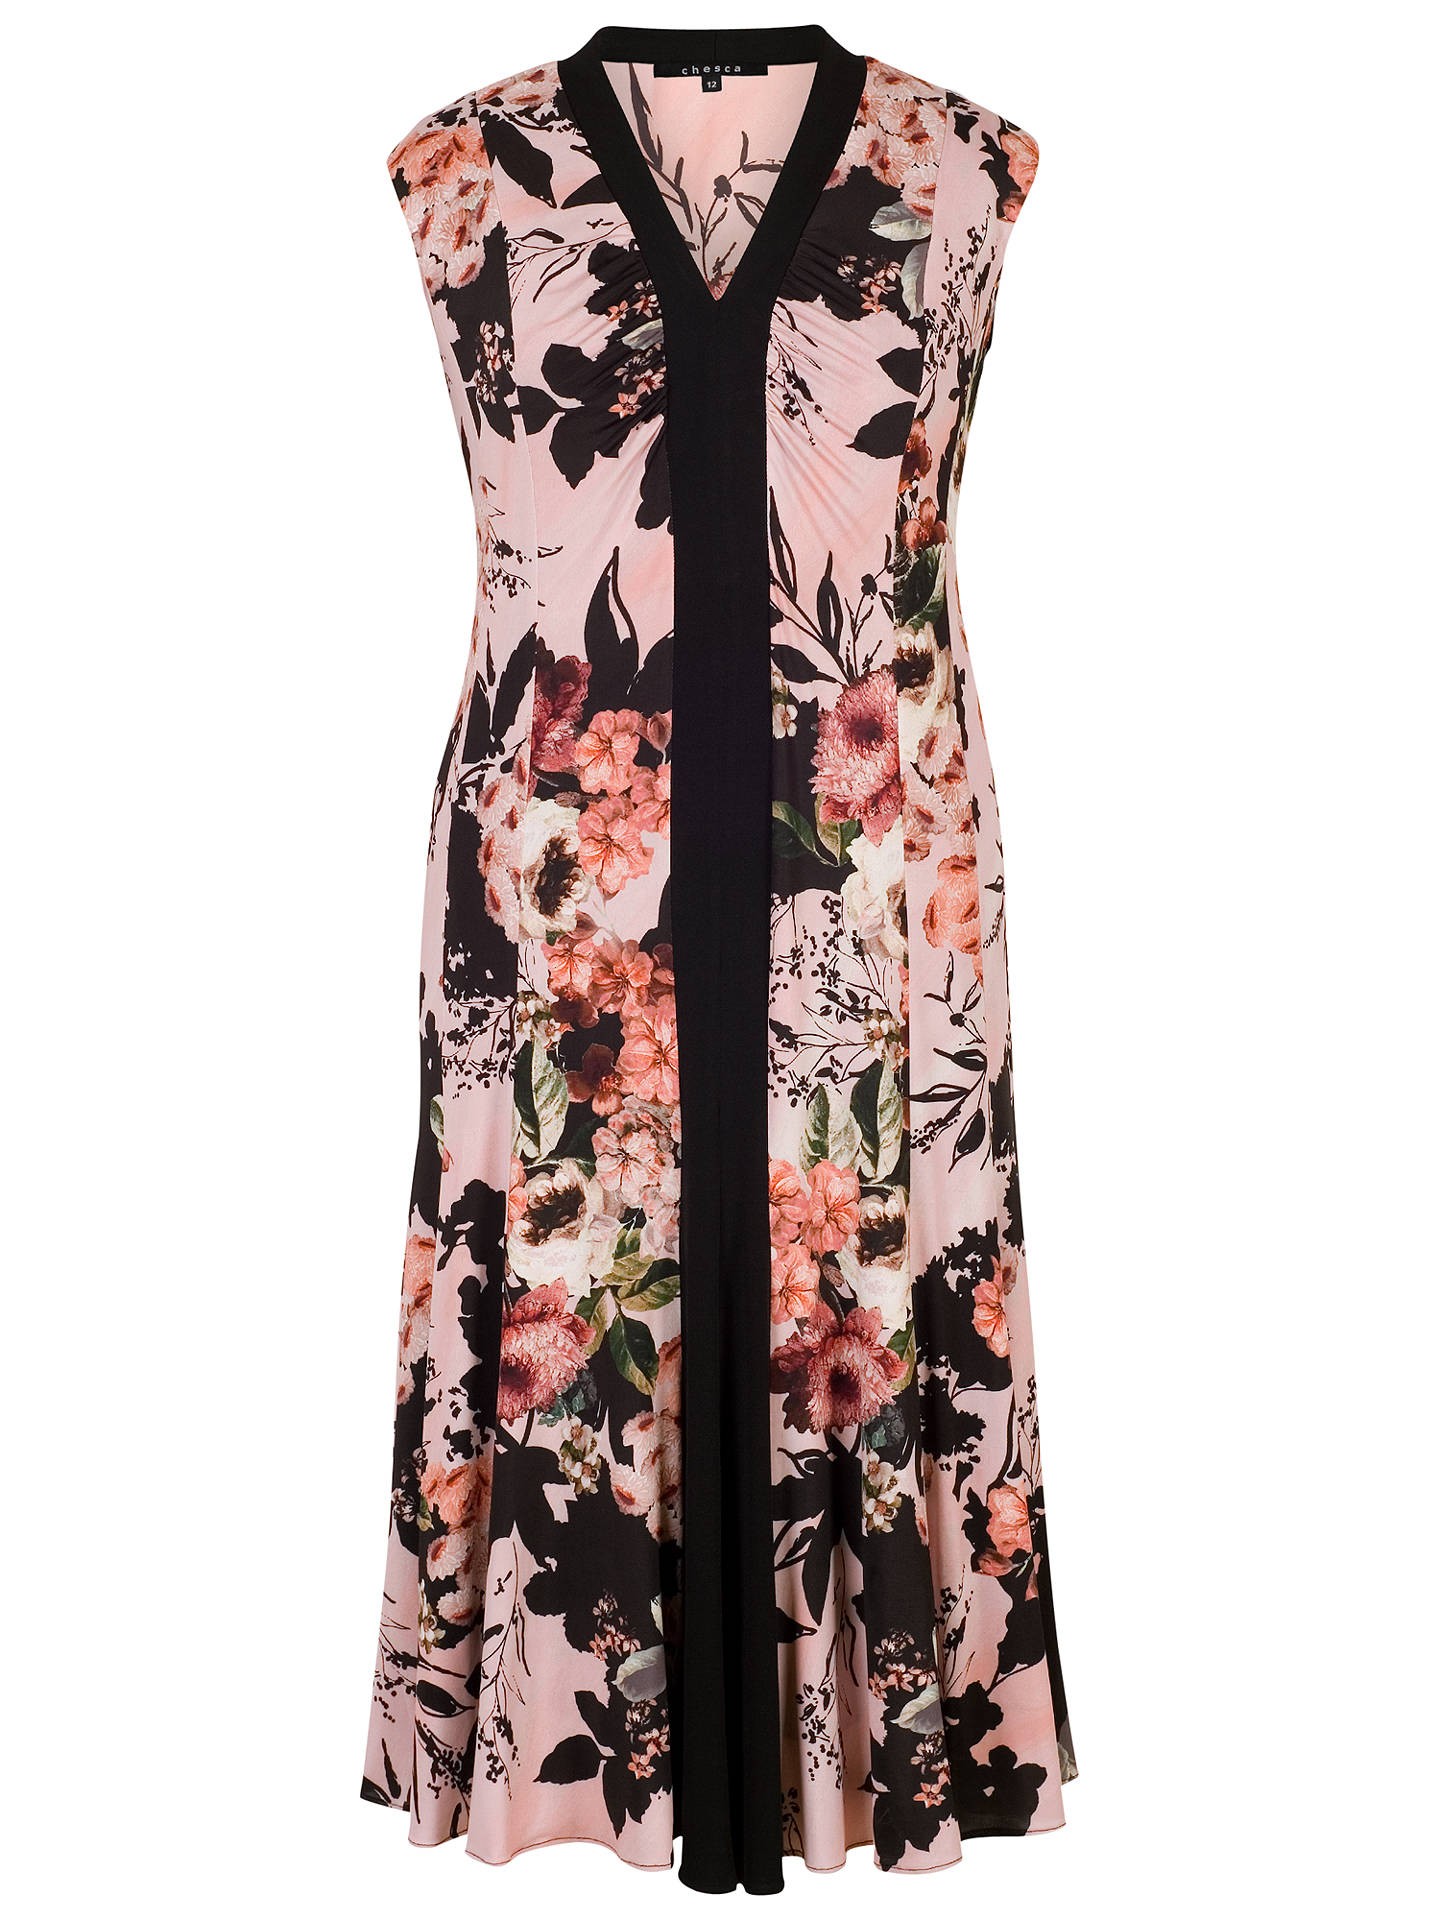 840fe34ae3e1a Buy Chesca Rose Print Jersey Dress, Apricot, 14 Online at johnlewis.com ...